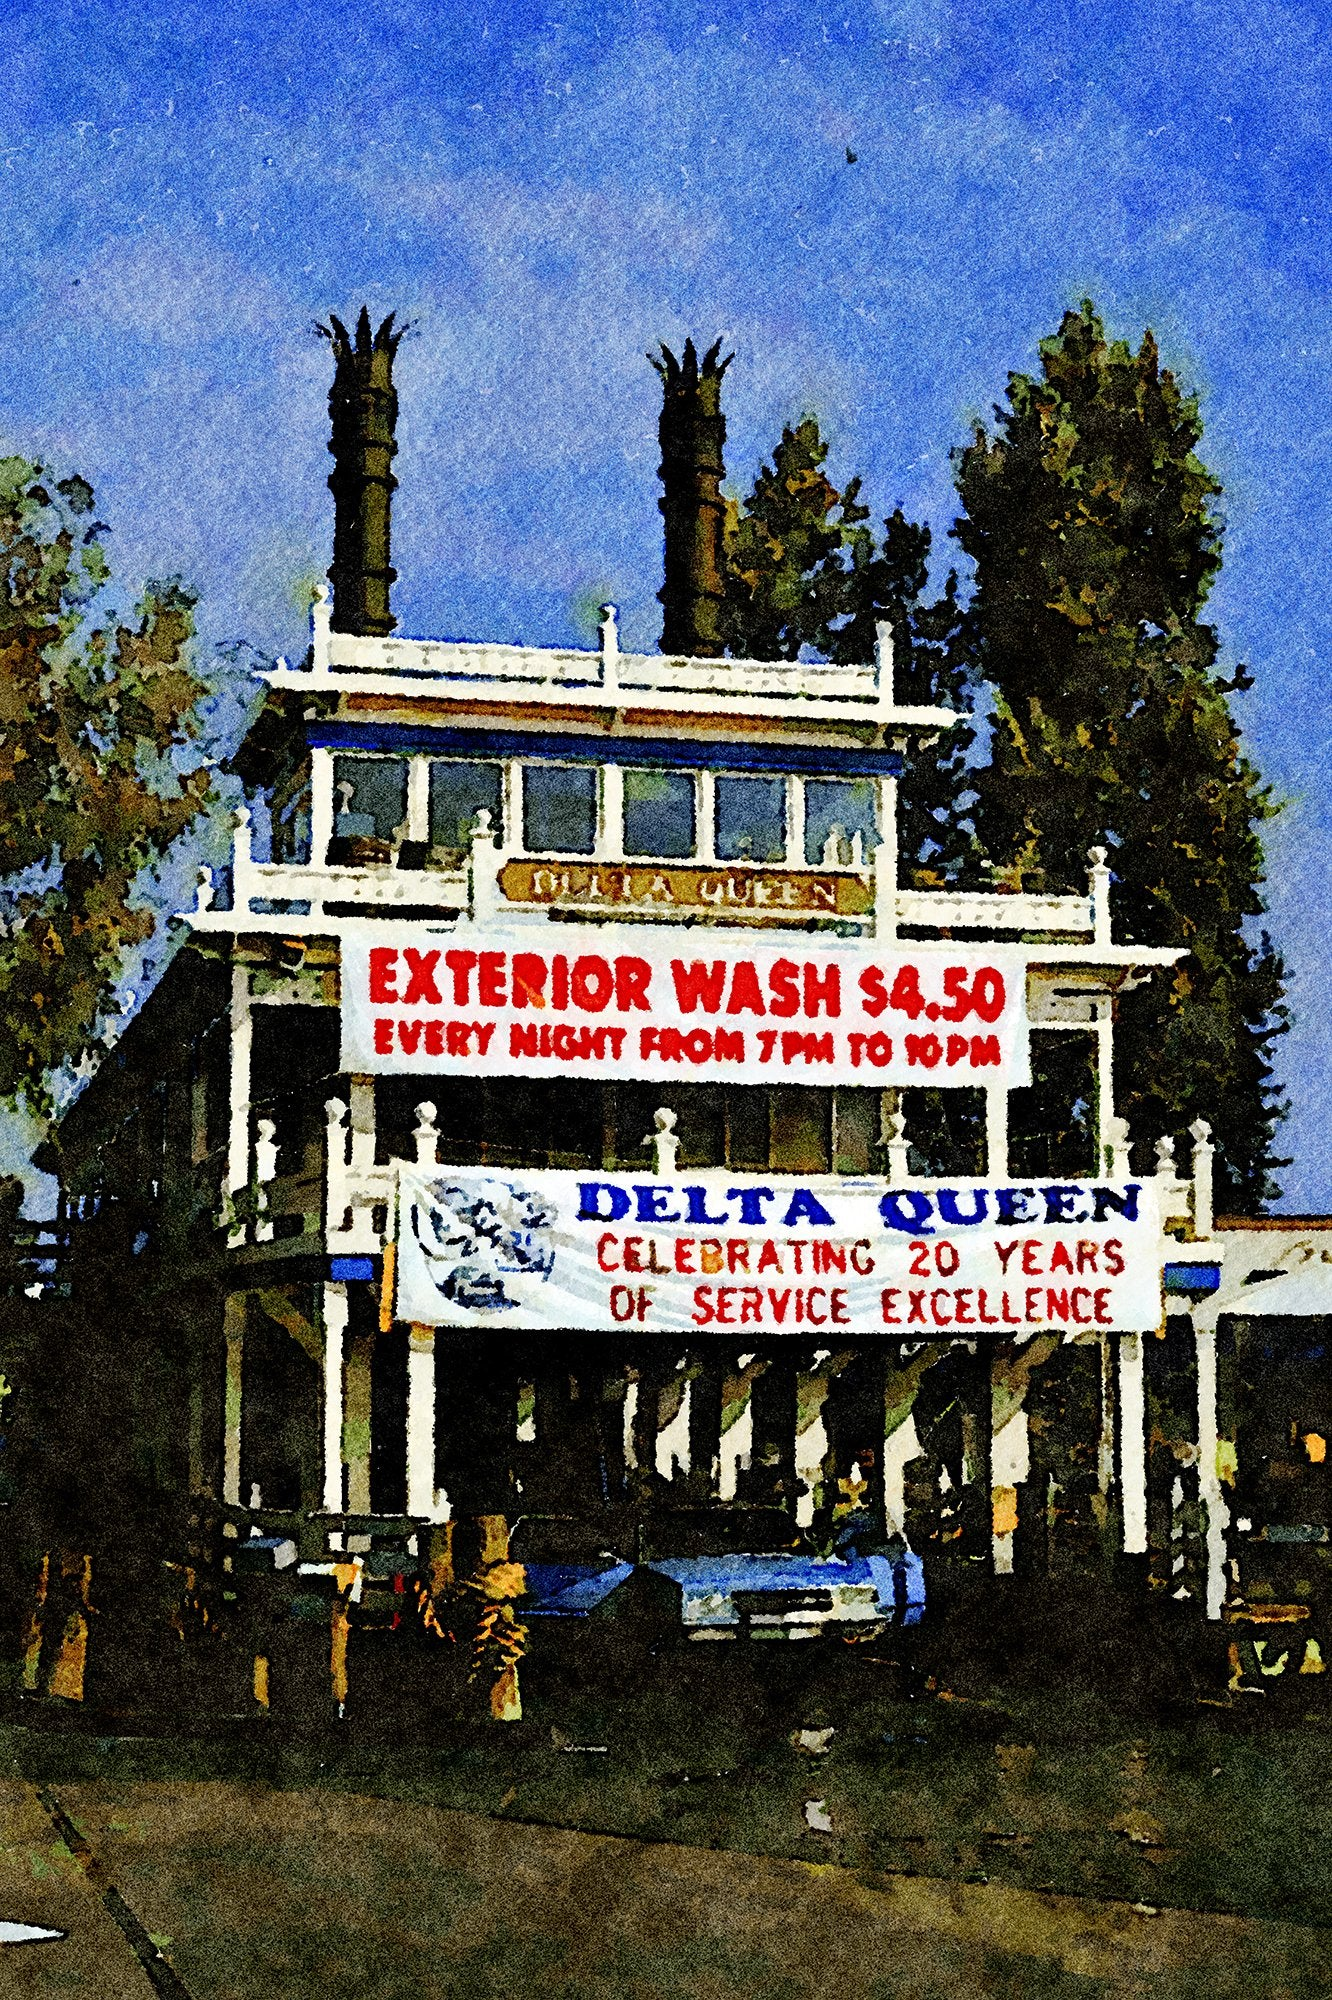 Delta Queen Car Wash, Hamilton Avenue Near Bascom, Campbell, California, Reworked, Series 1